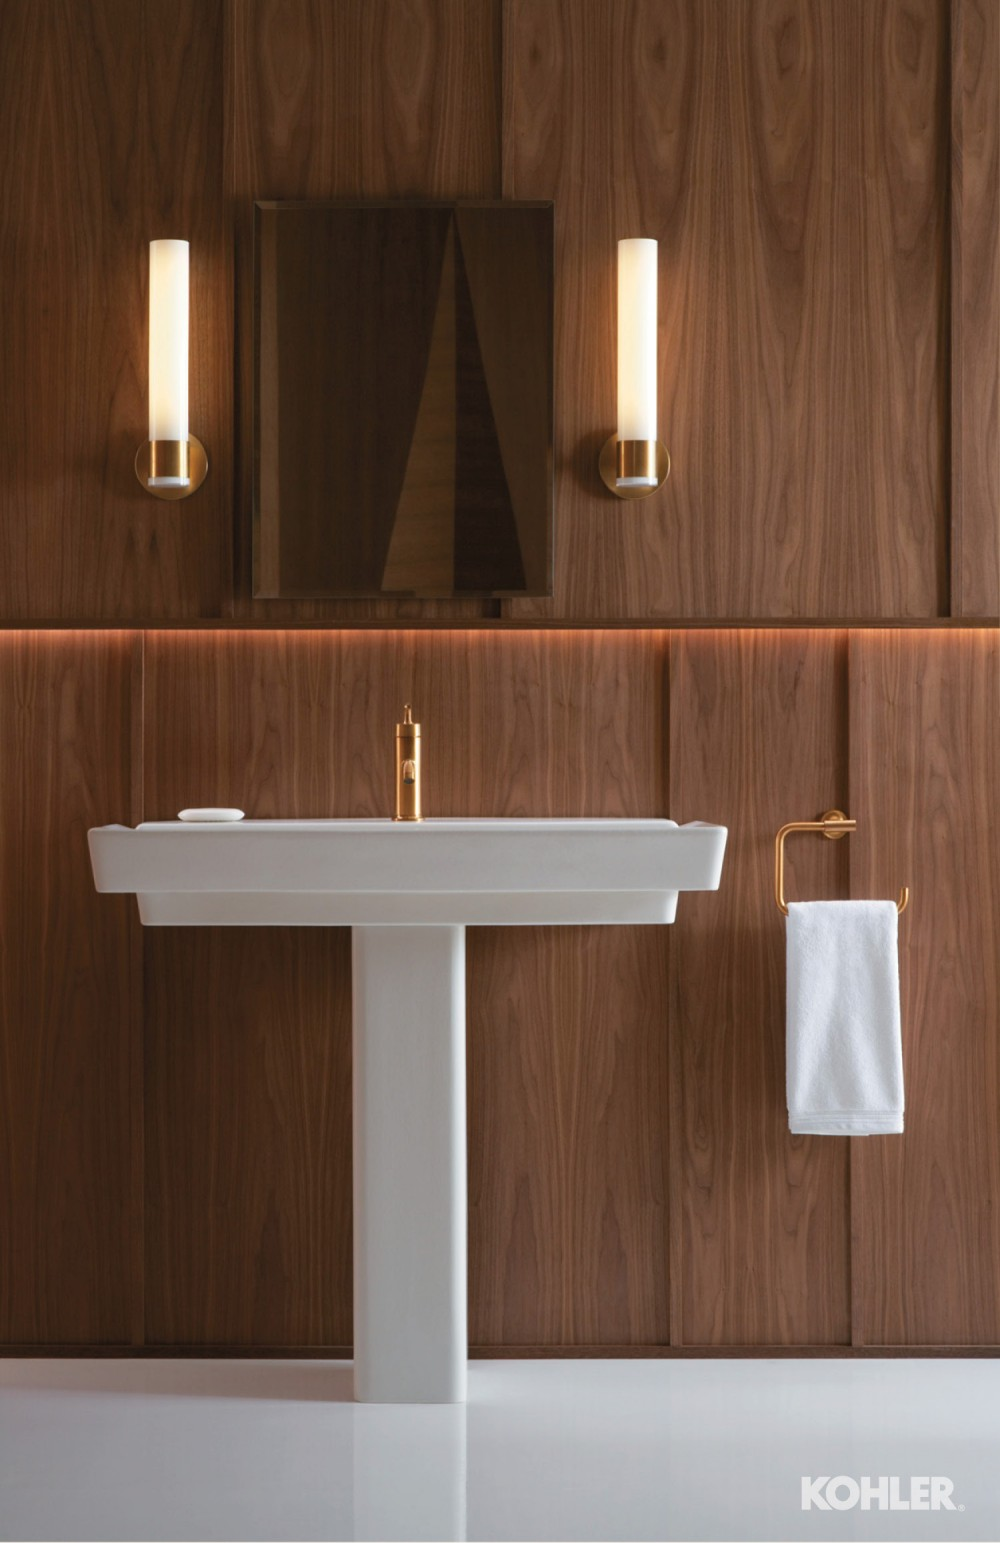 purist faucet purist towel ring purist wall sconce rve sink the best design delicately balances opposites